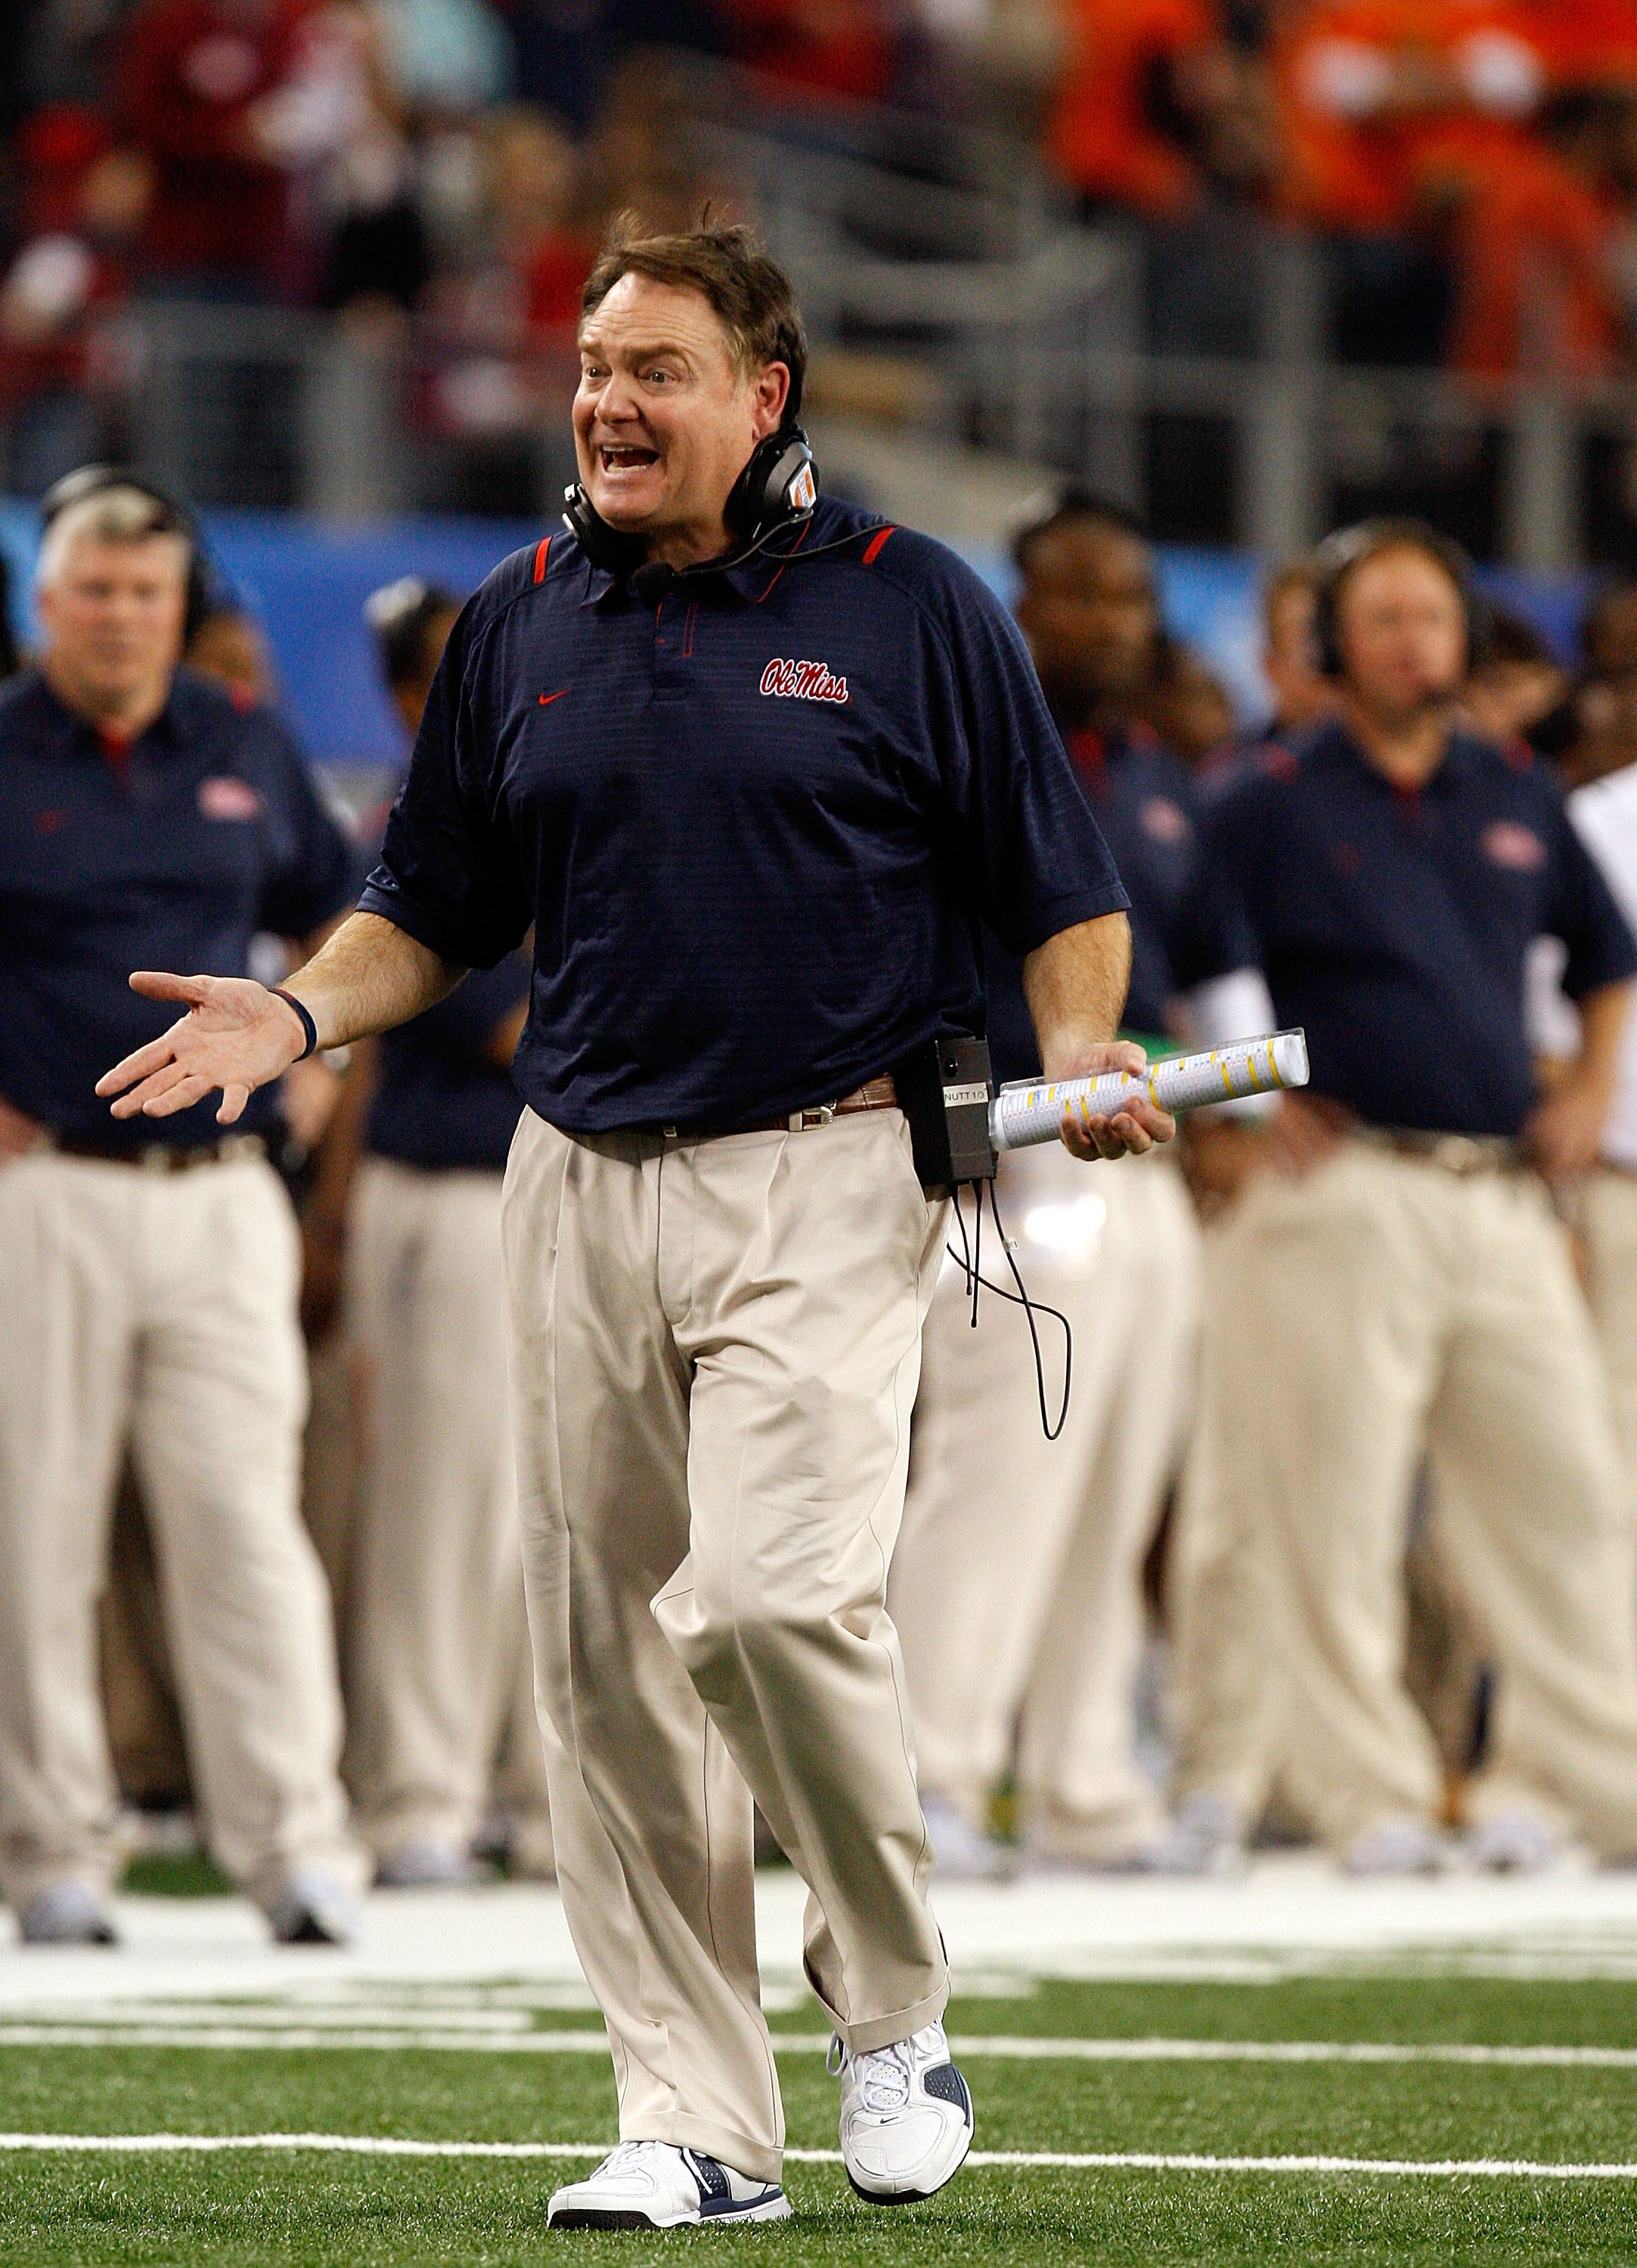 ARLINGTON, TX - JANUARY 02:  Head coach Houston Nutt of the Mississippi Rebels during the AT&T Cotton Bowl on January 2, 2010 at Cowboys Stadium in Arlington, Texas.  (Photo by Ronald Martinez/Getty Images)